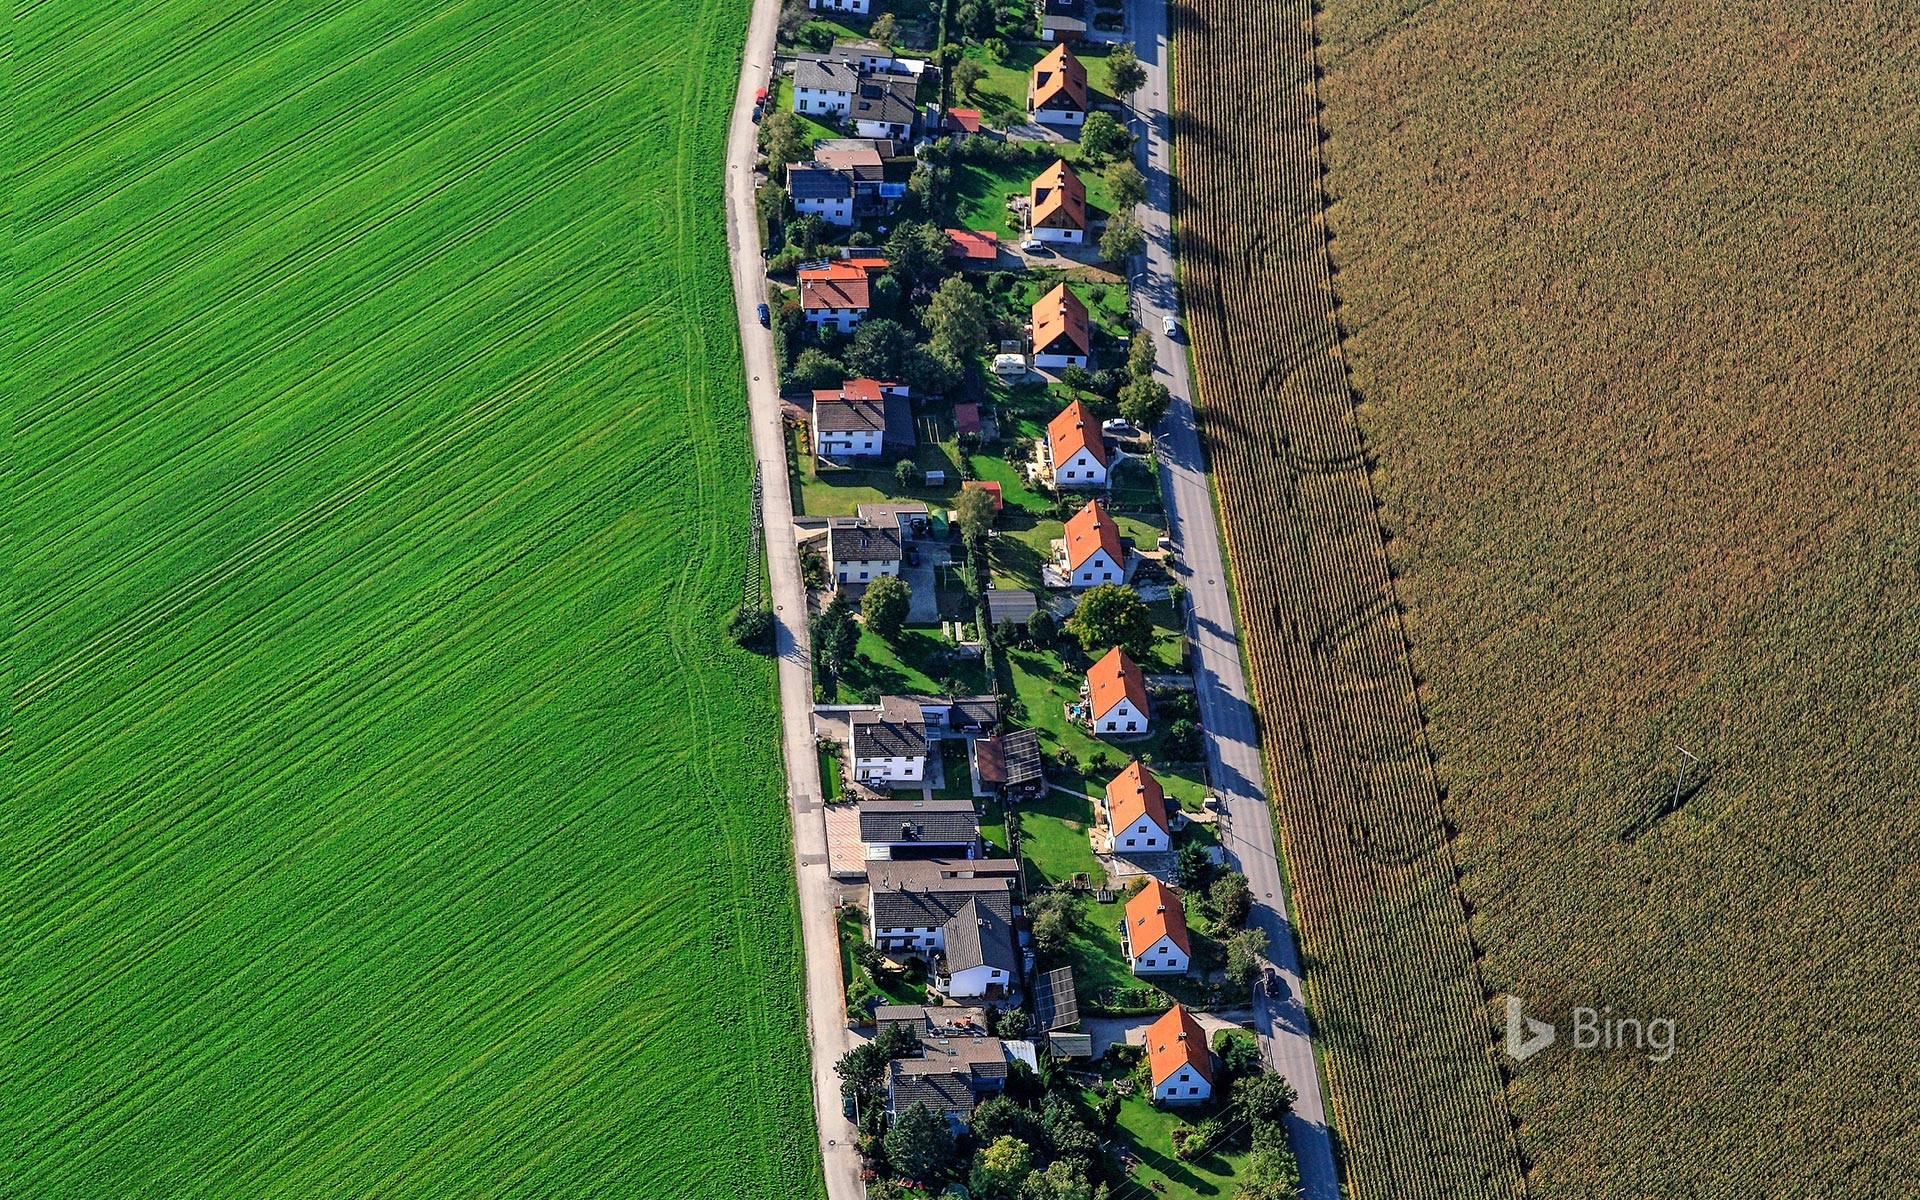 Aerial view of Poing, Bavaria, Germany